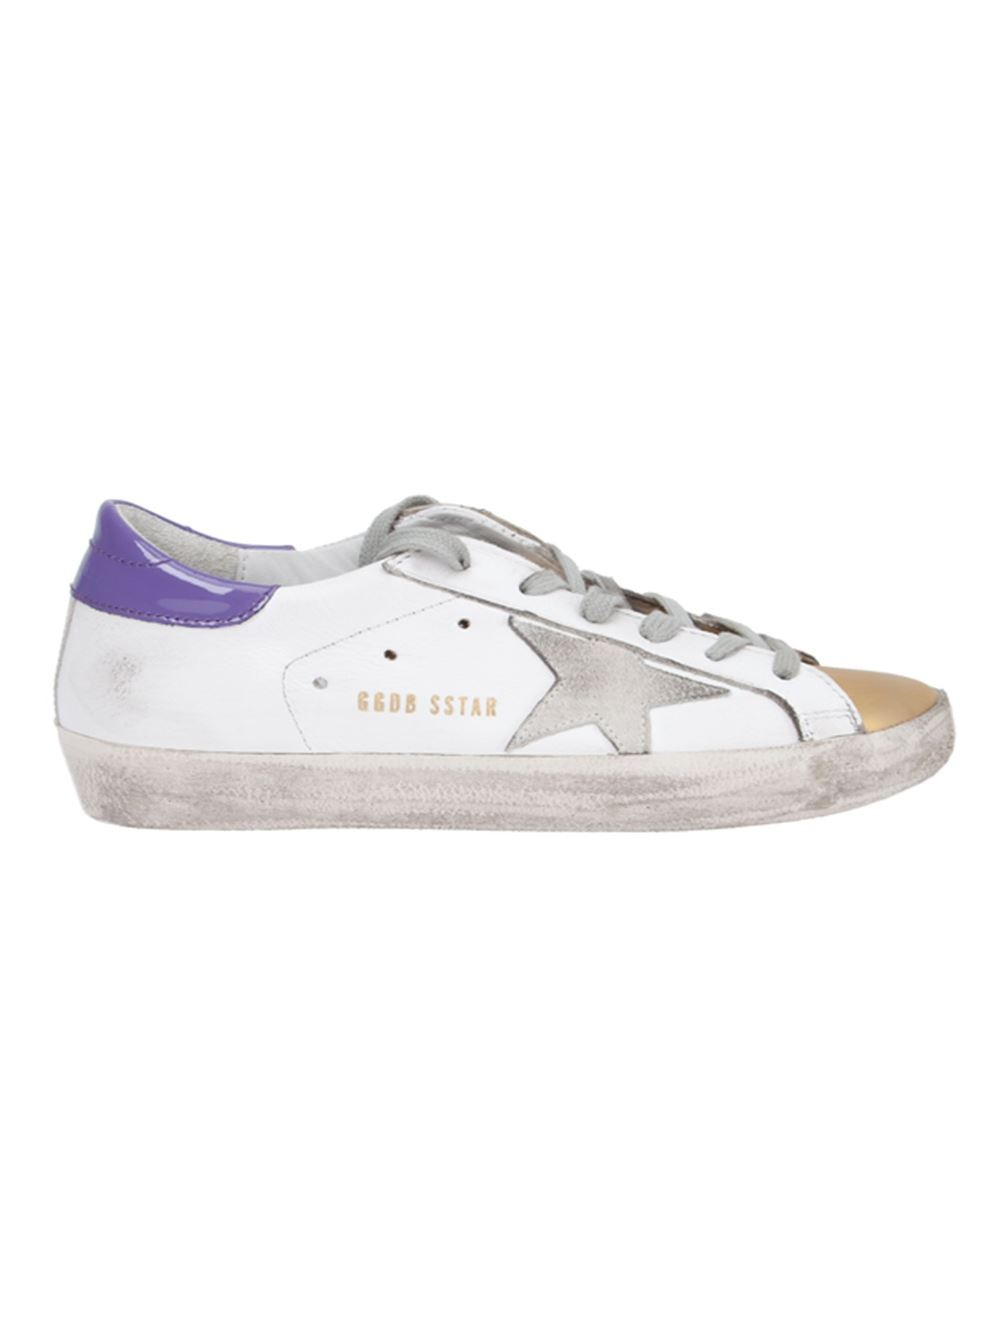 lyst golden goose deluxe brand 39 super star 39 sneakers in purple. Black Bedroom Furniture Sets. Home Design Ideas